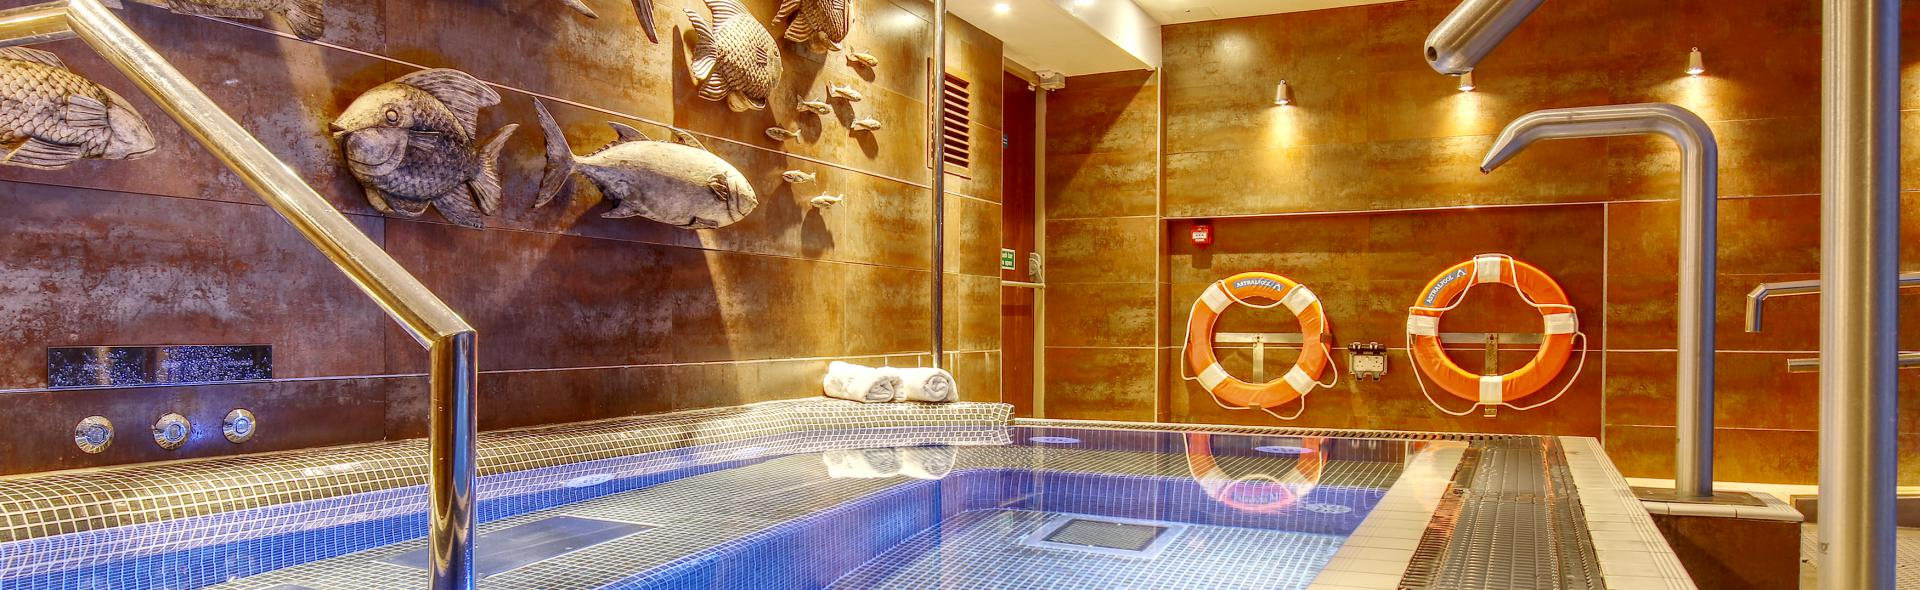 Spa Days In Salcombe Devon Spa Breaks Thurlestone Hotel